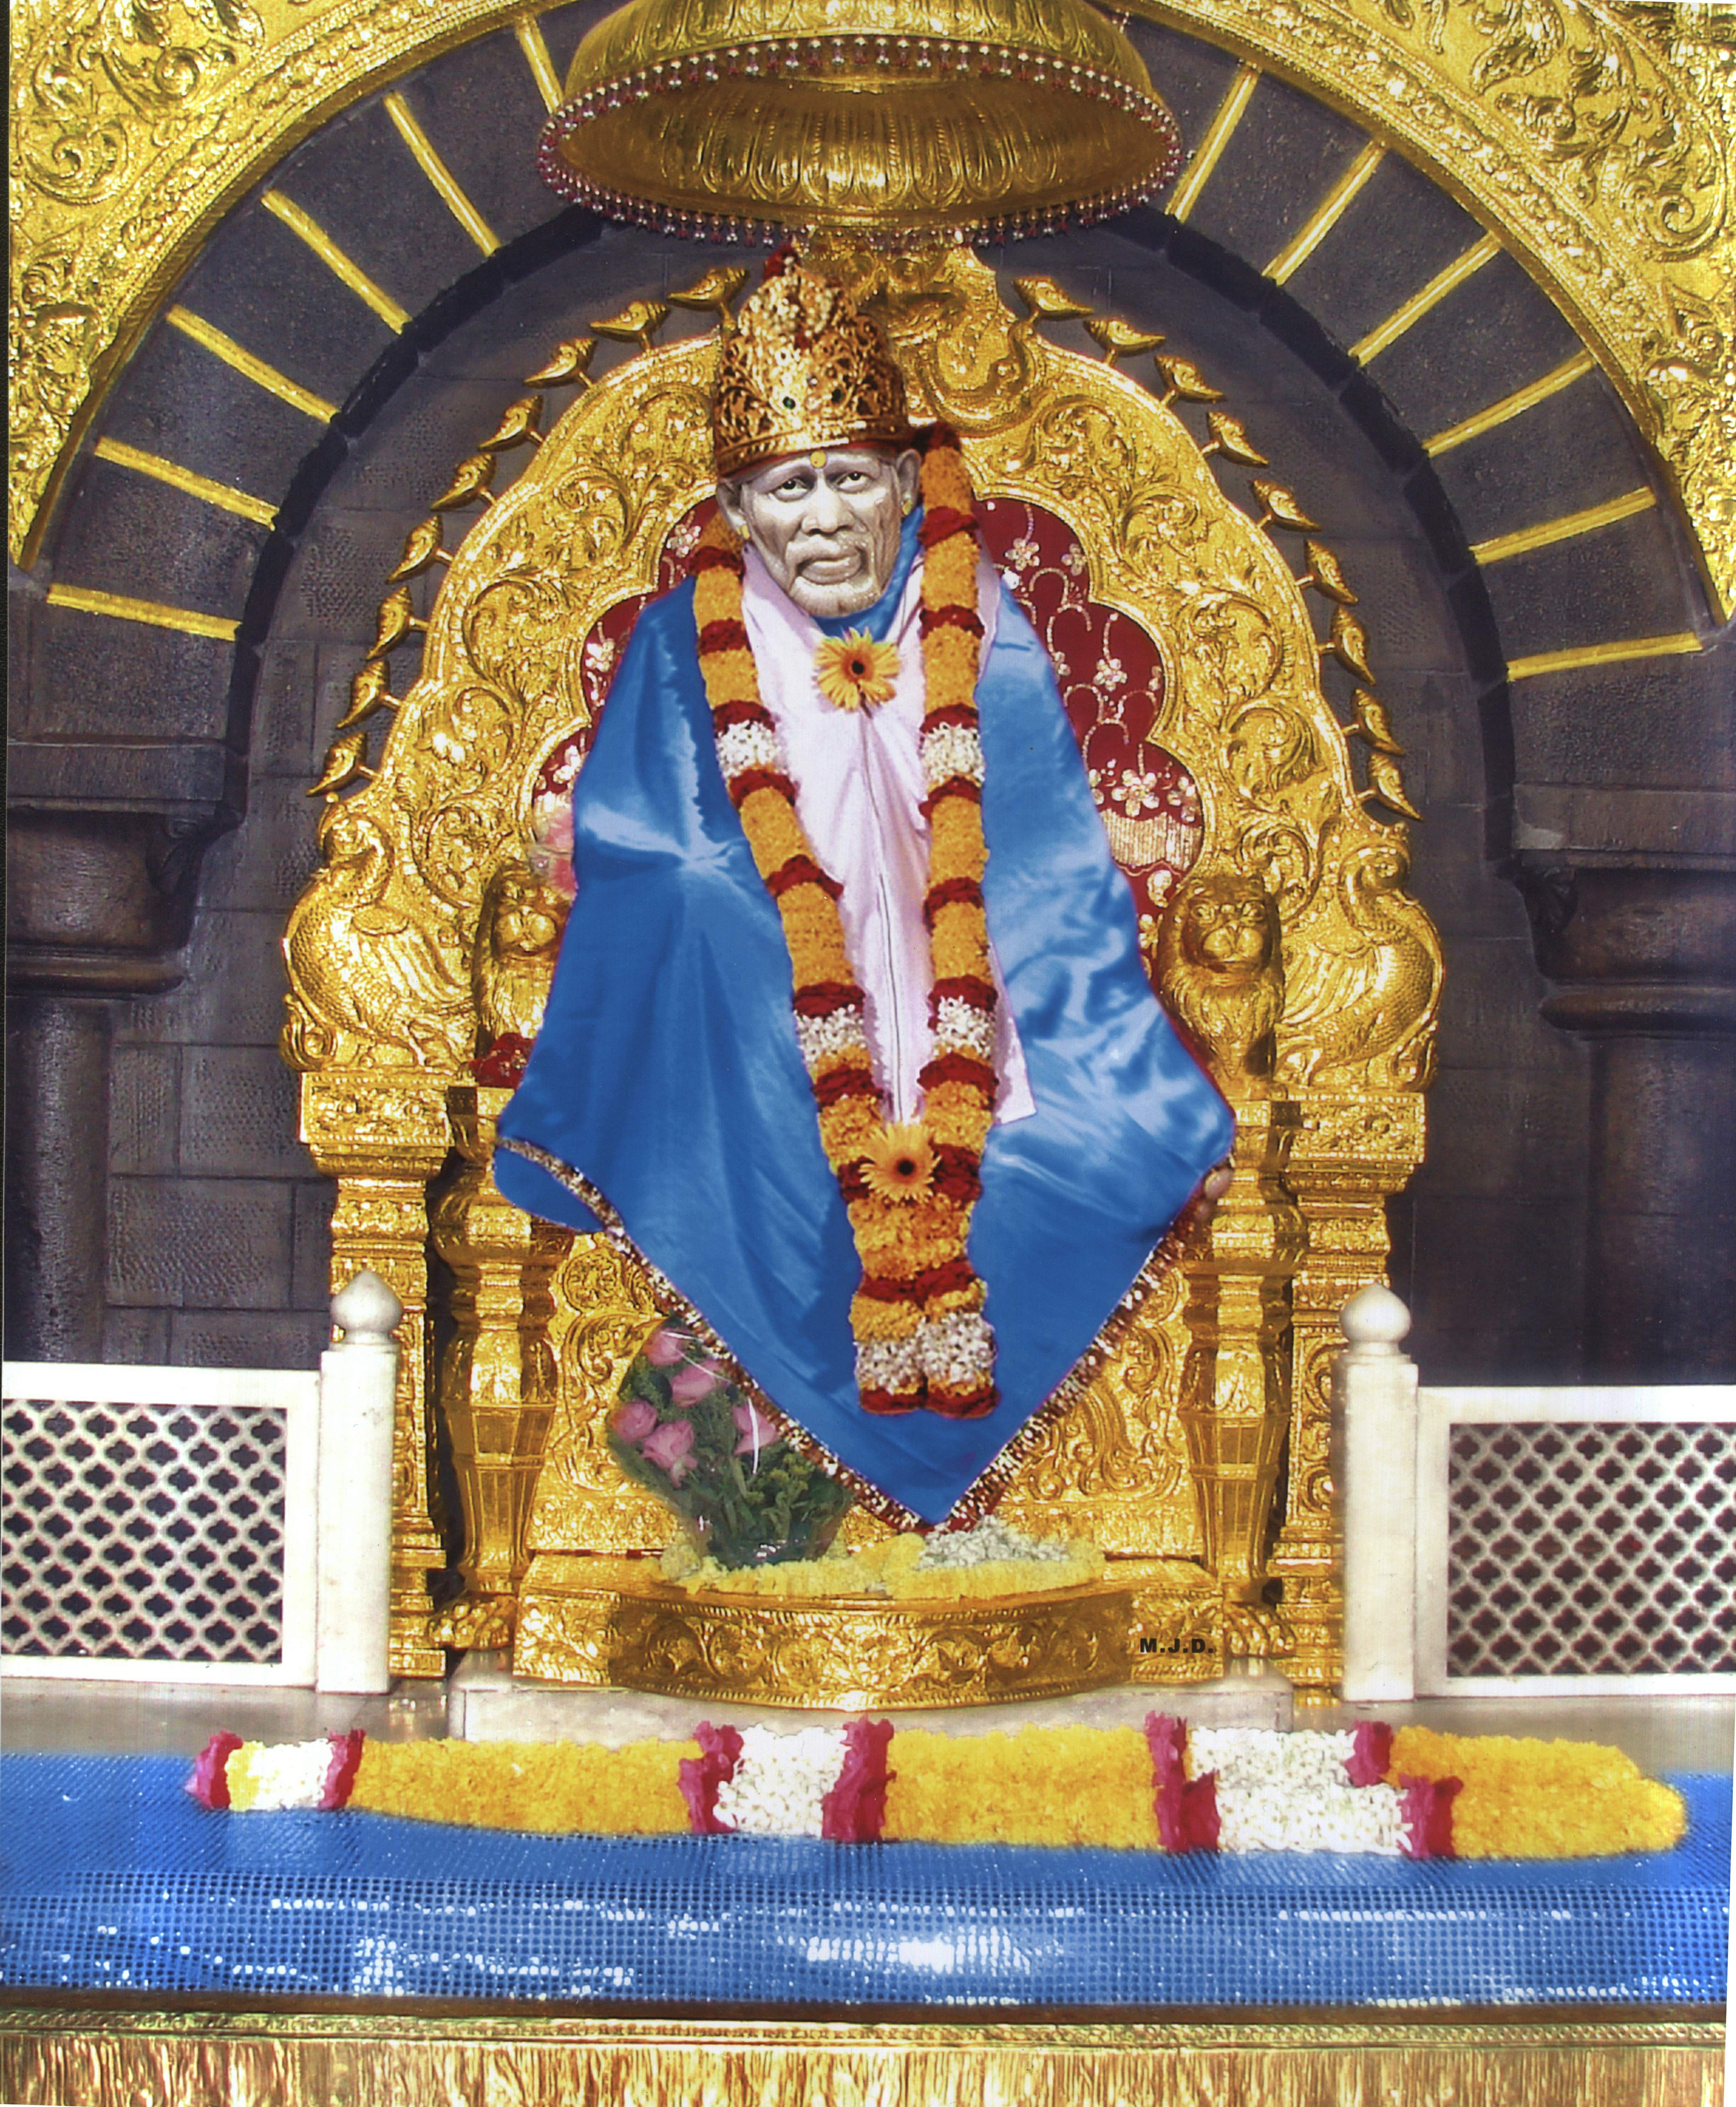 Hd wallpaper sai baba - Download Shirdi Sai Baba Wallpapers High Resolution Gallery